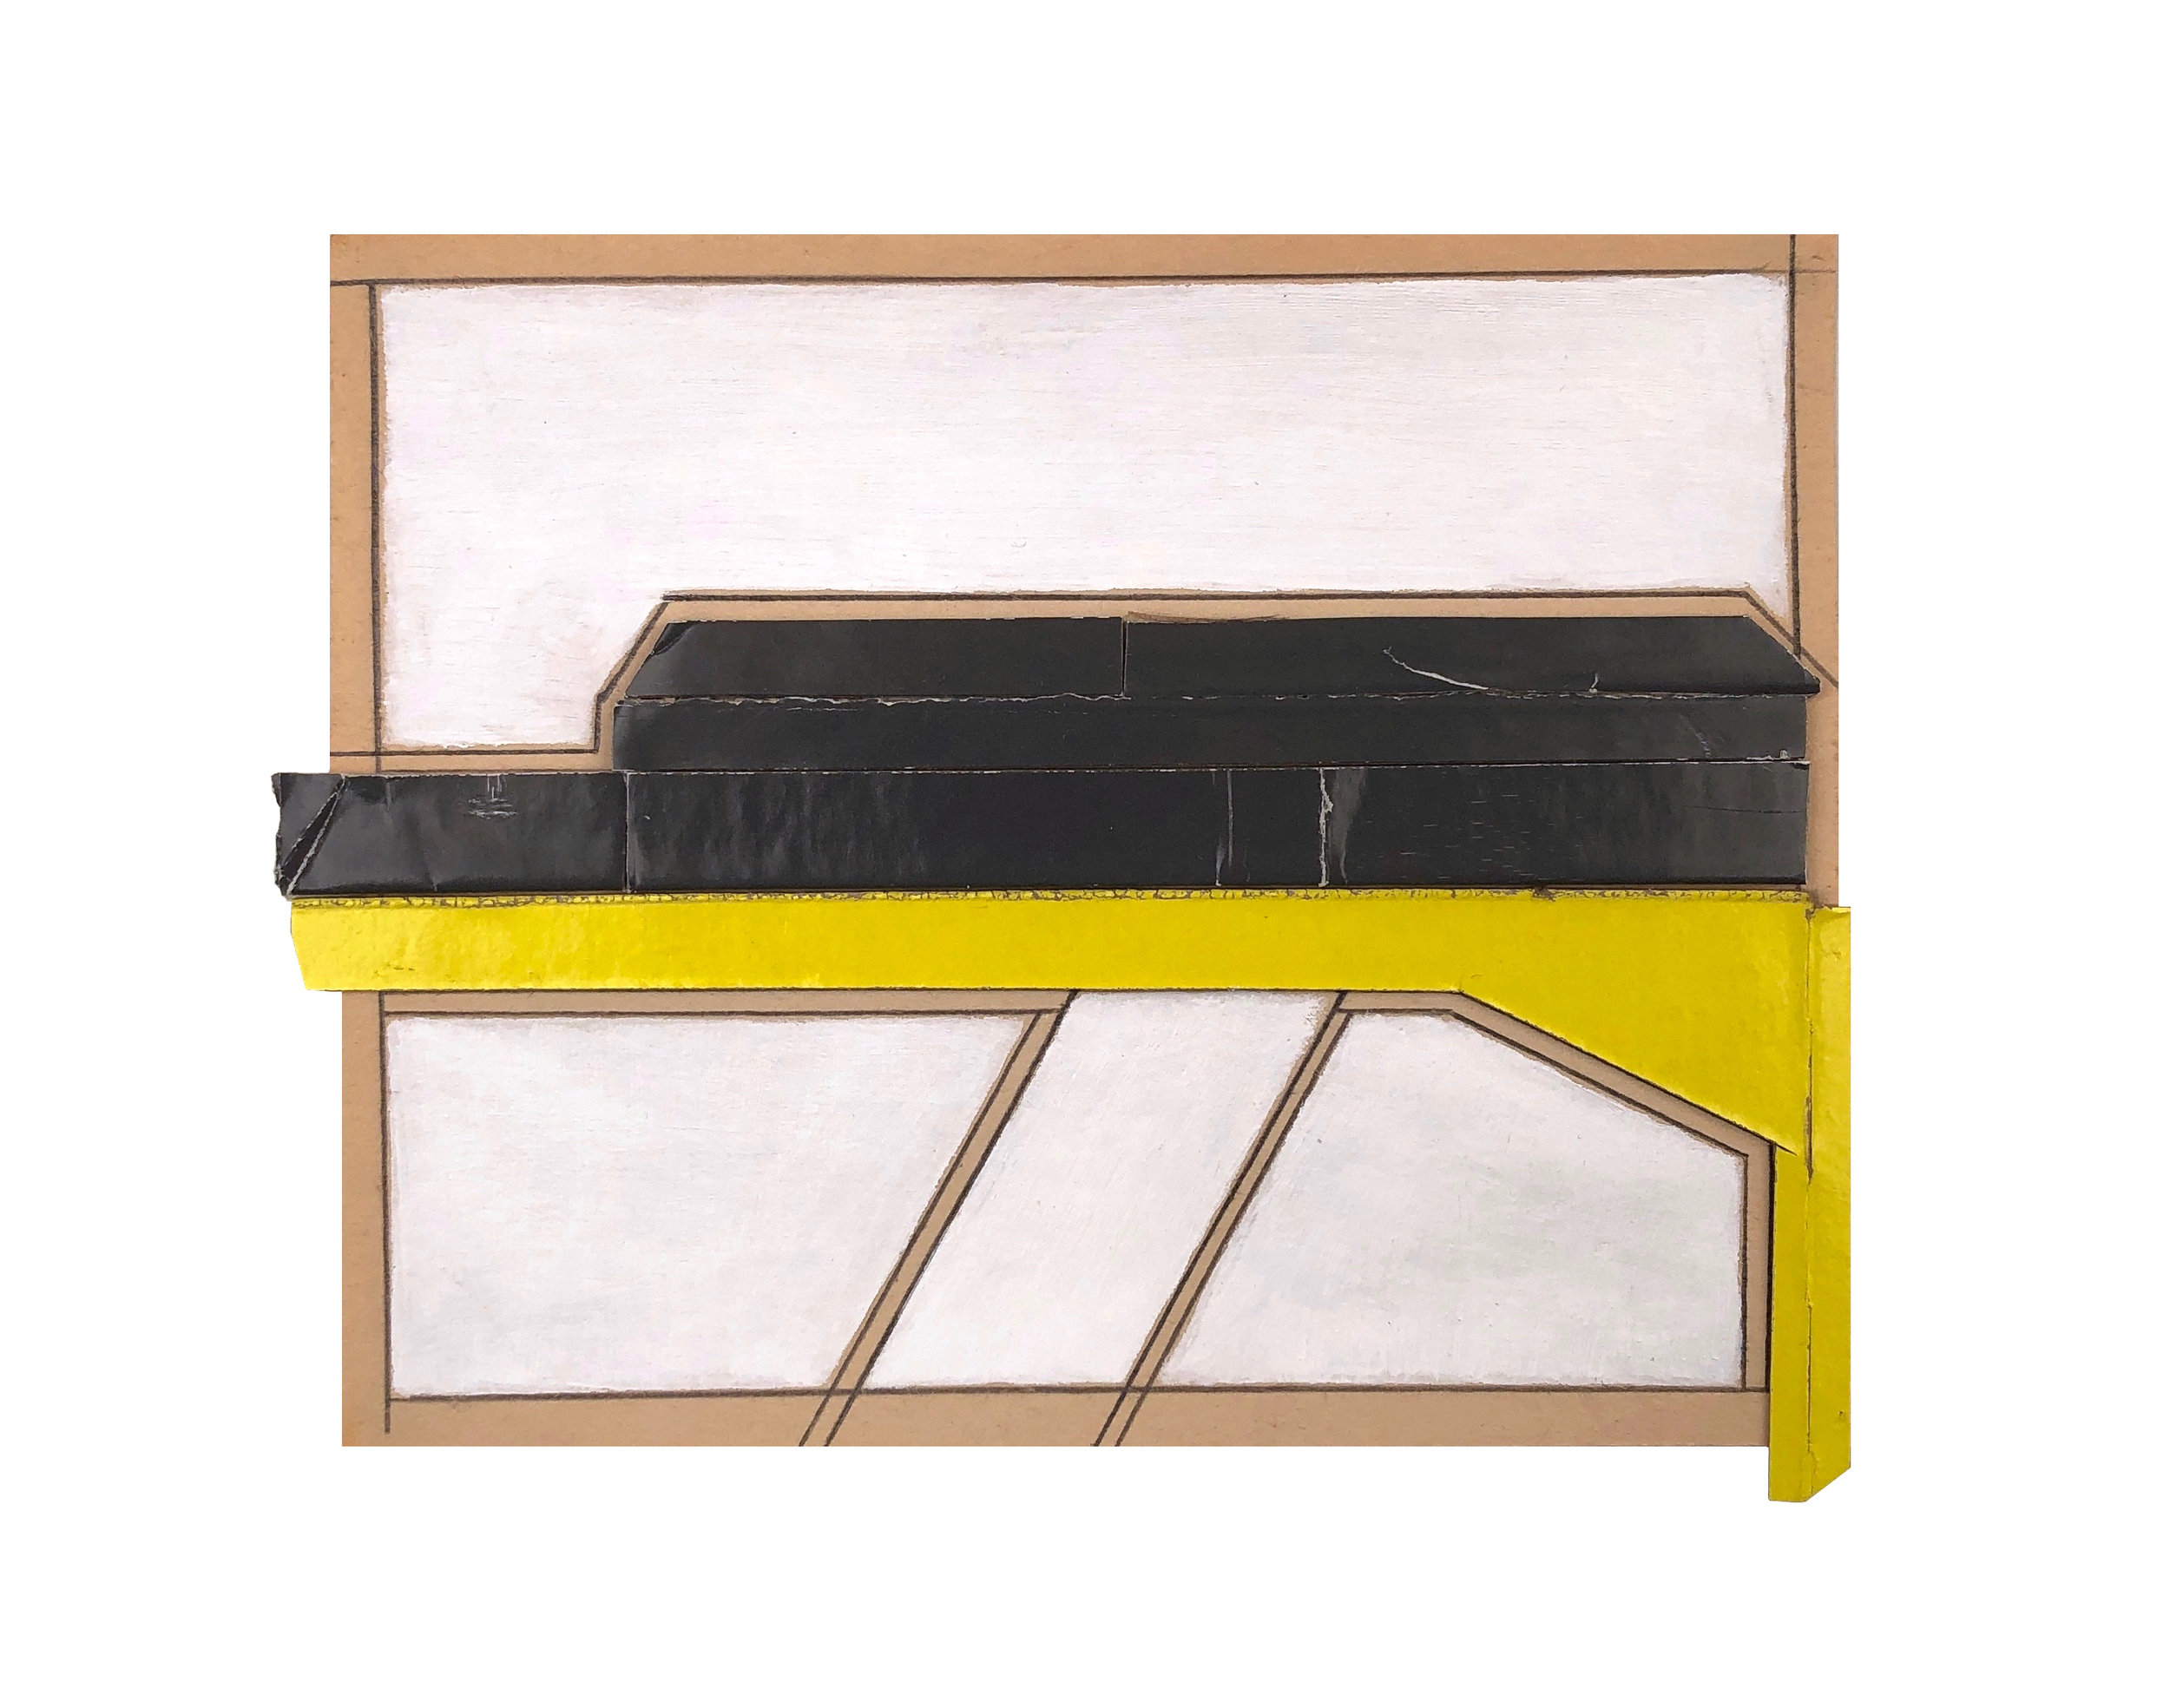 2019  cardboard, acrylic, pencil on paper  4 5/8 x 5 3/4 inches